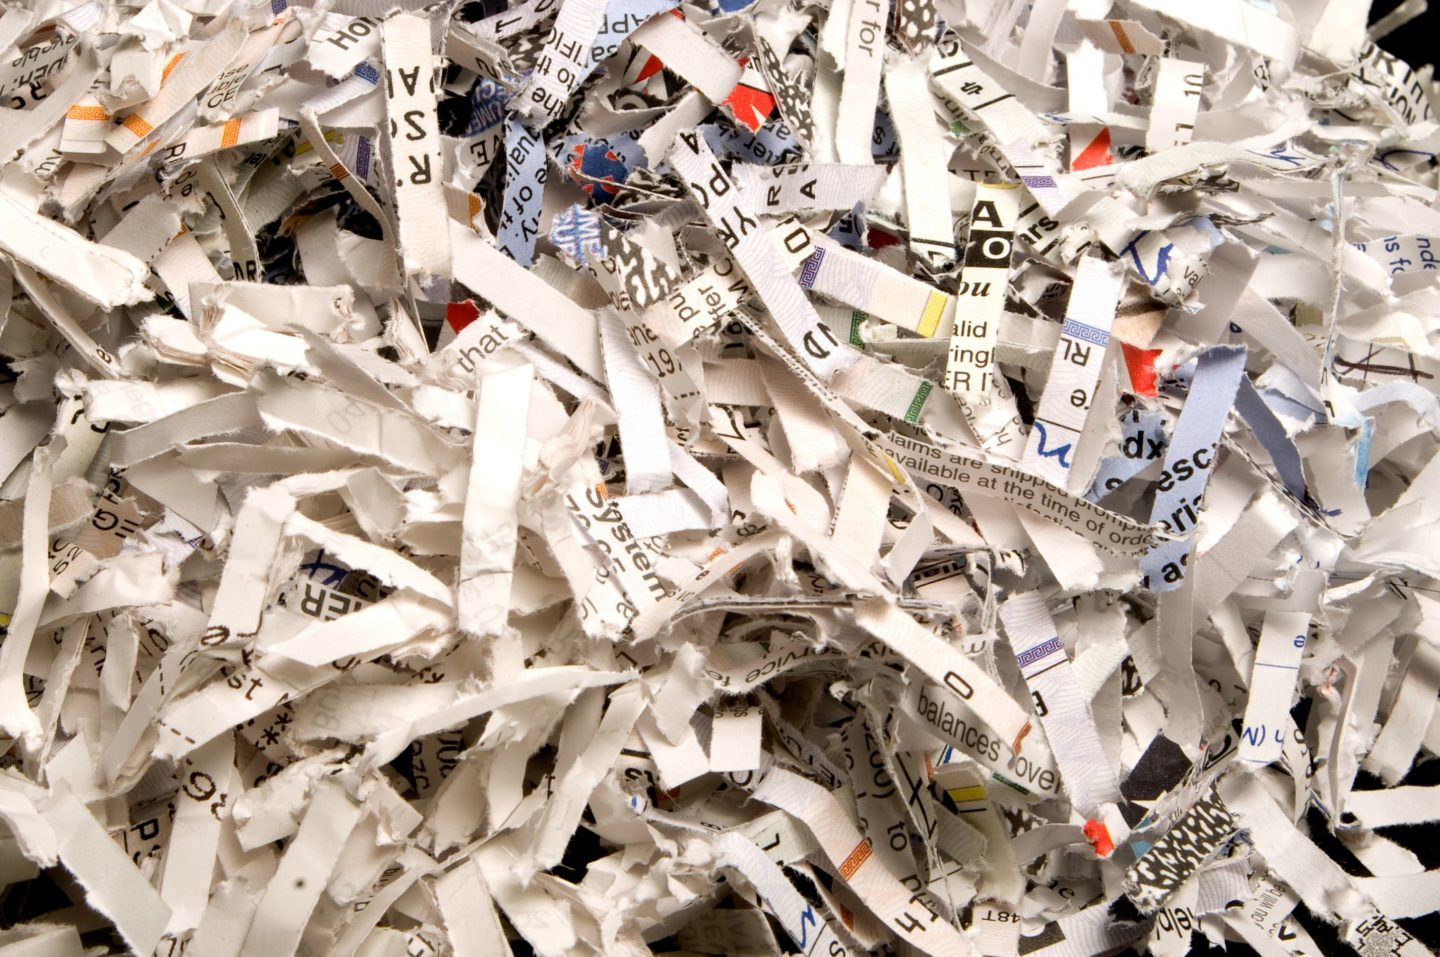 Buyer's Guide: the best shredders for home and business